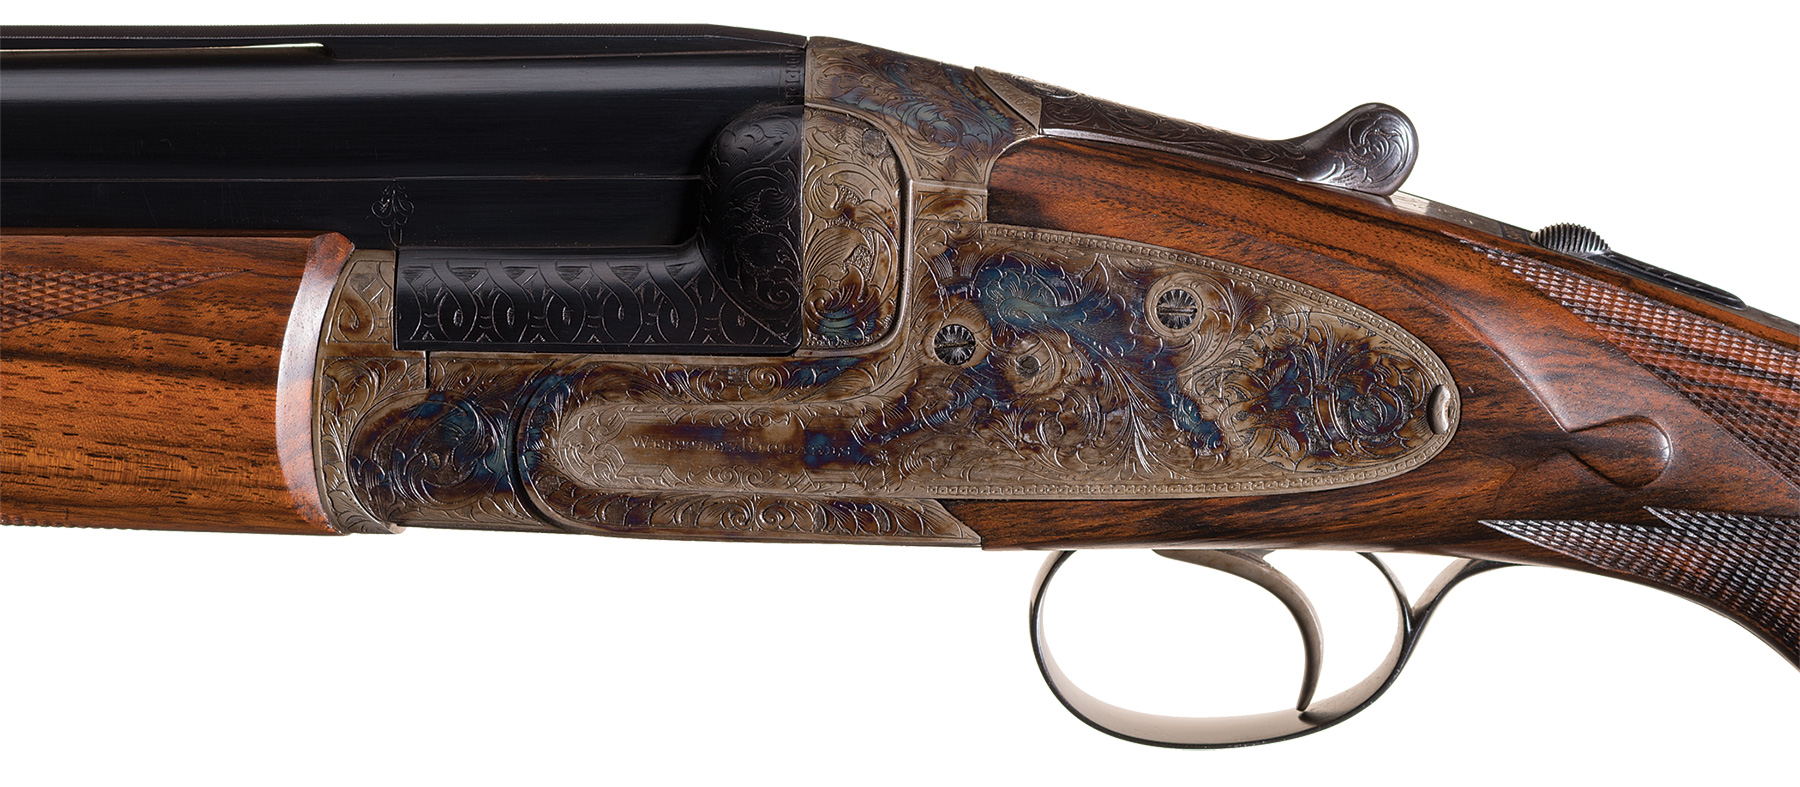 Westley Richards Ovundo gun action